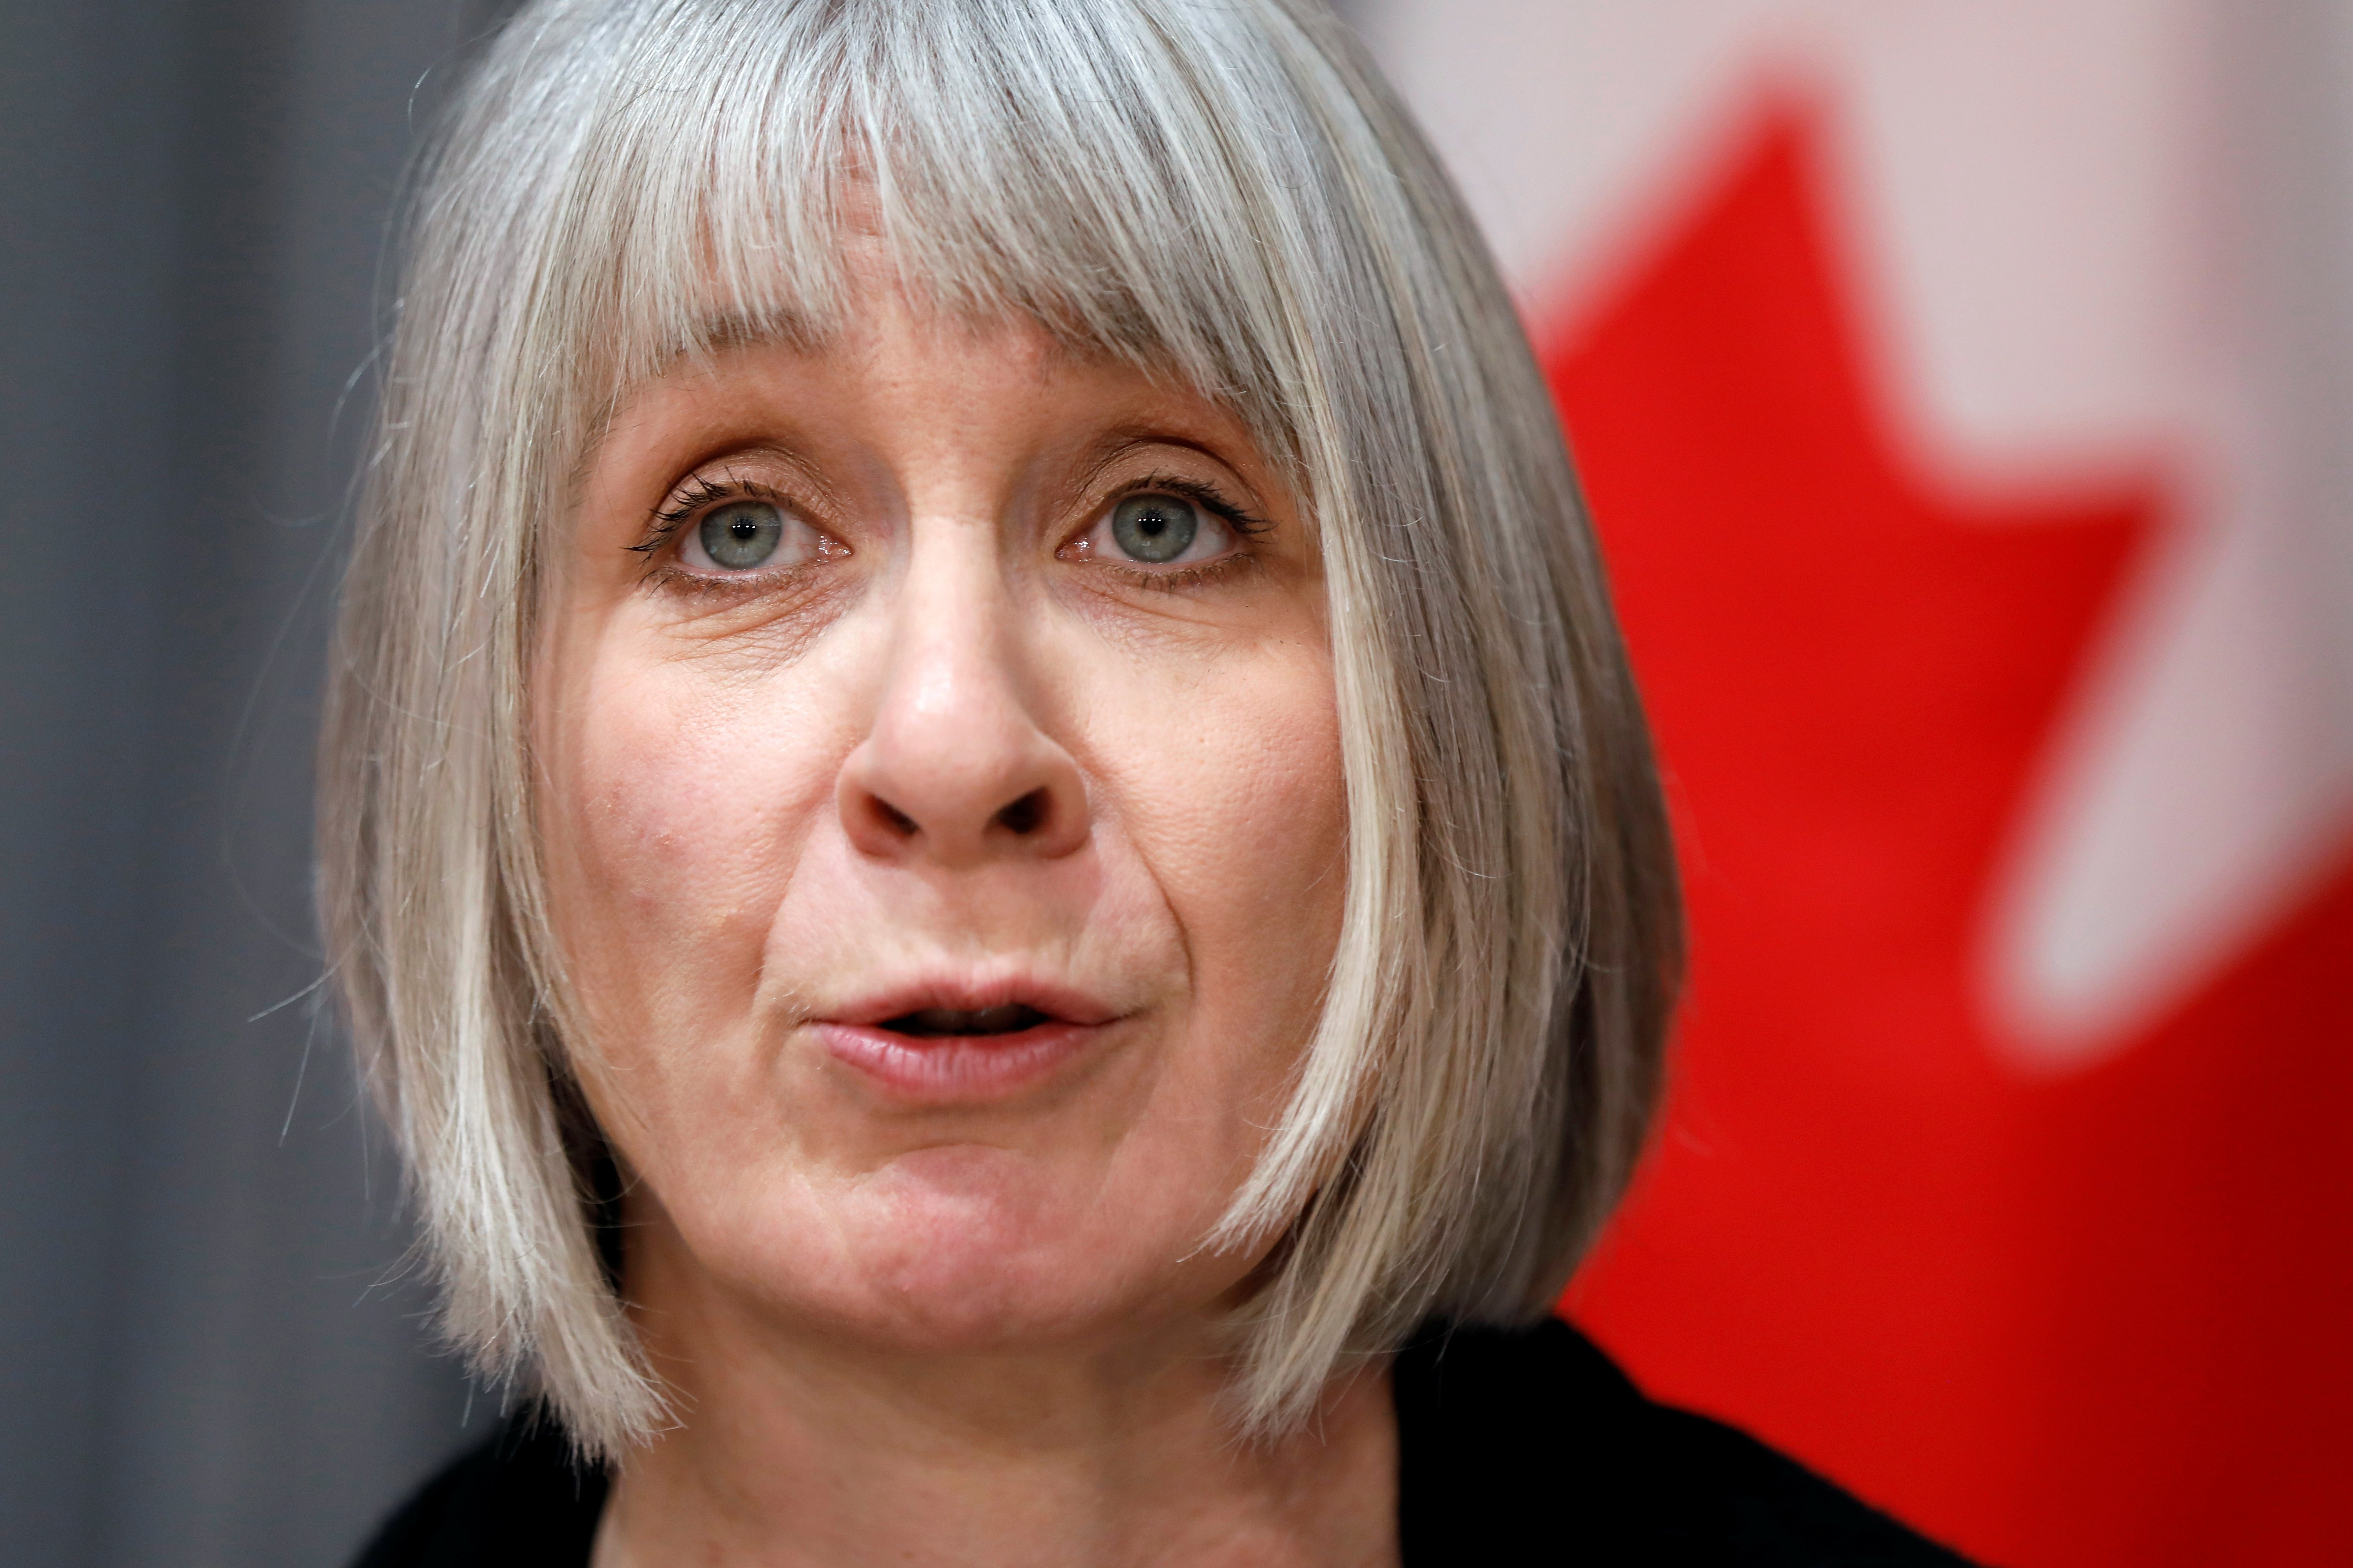 Canada's Minister of Health Patty Hajdu attends a news conference as efforts continue to help slow the spread of coronavirus disease (COVID-19) in Ottawa, Ontario, Canada March 23, 2020. REUTERS/Blair Gable